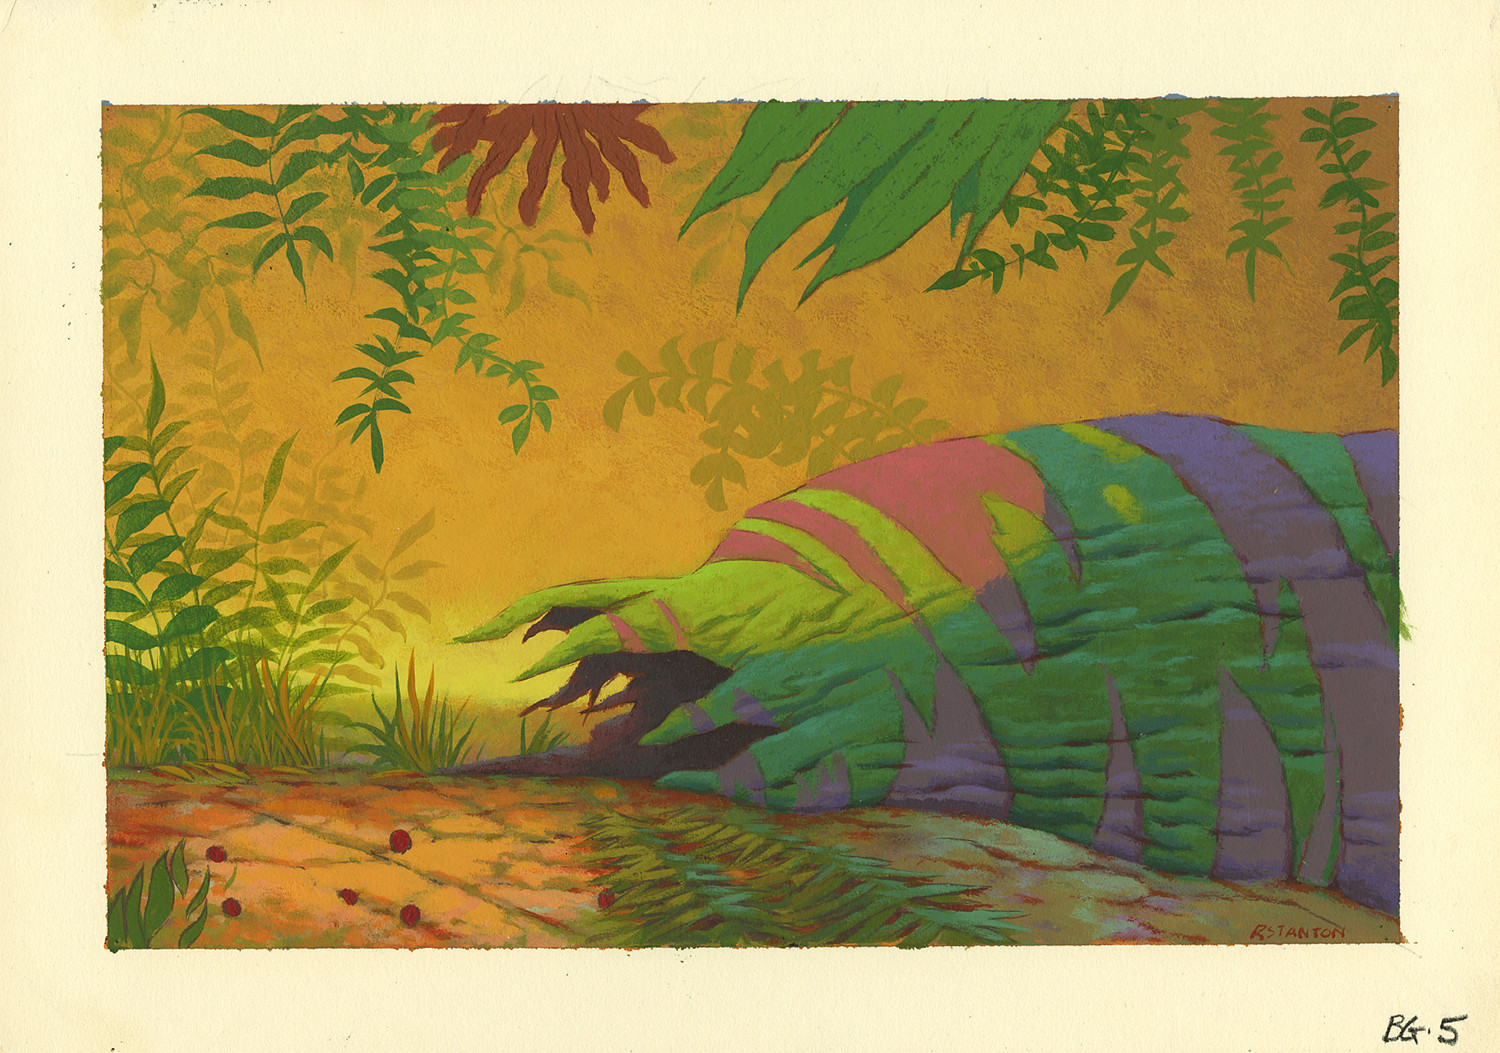 - The Lion King Background Color Key Concept - ID: Aprlionking5236